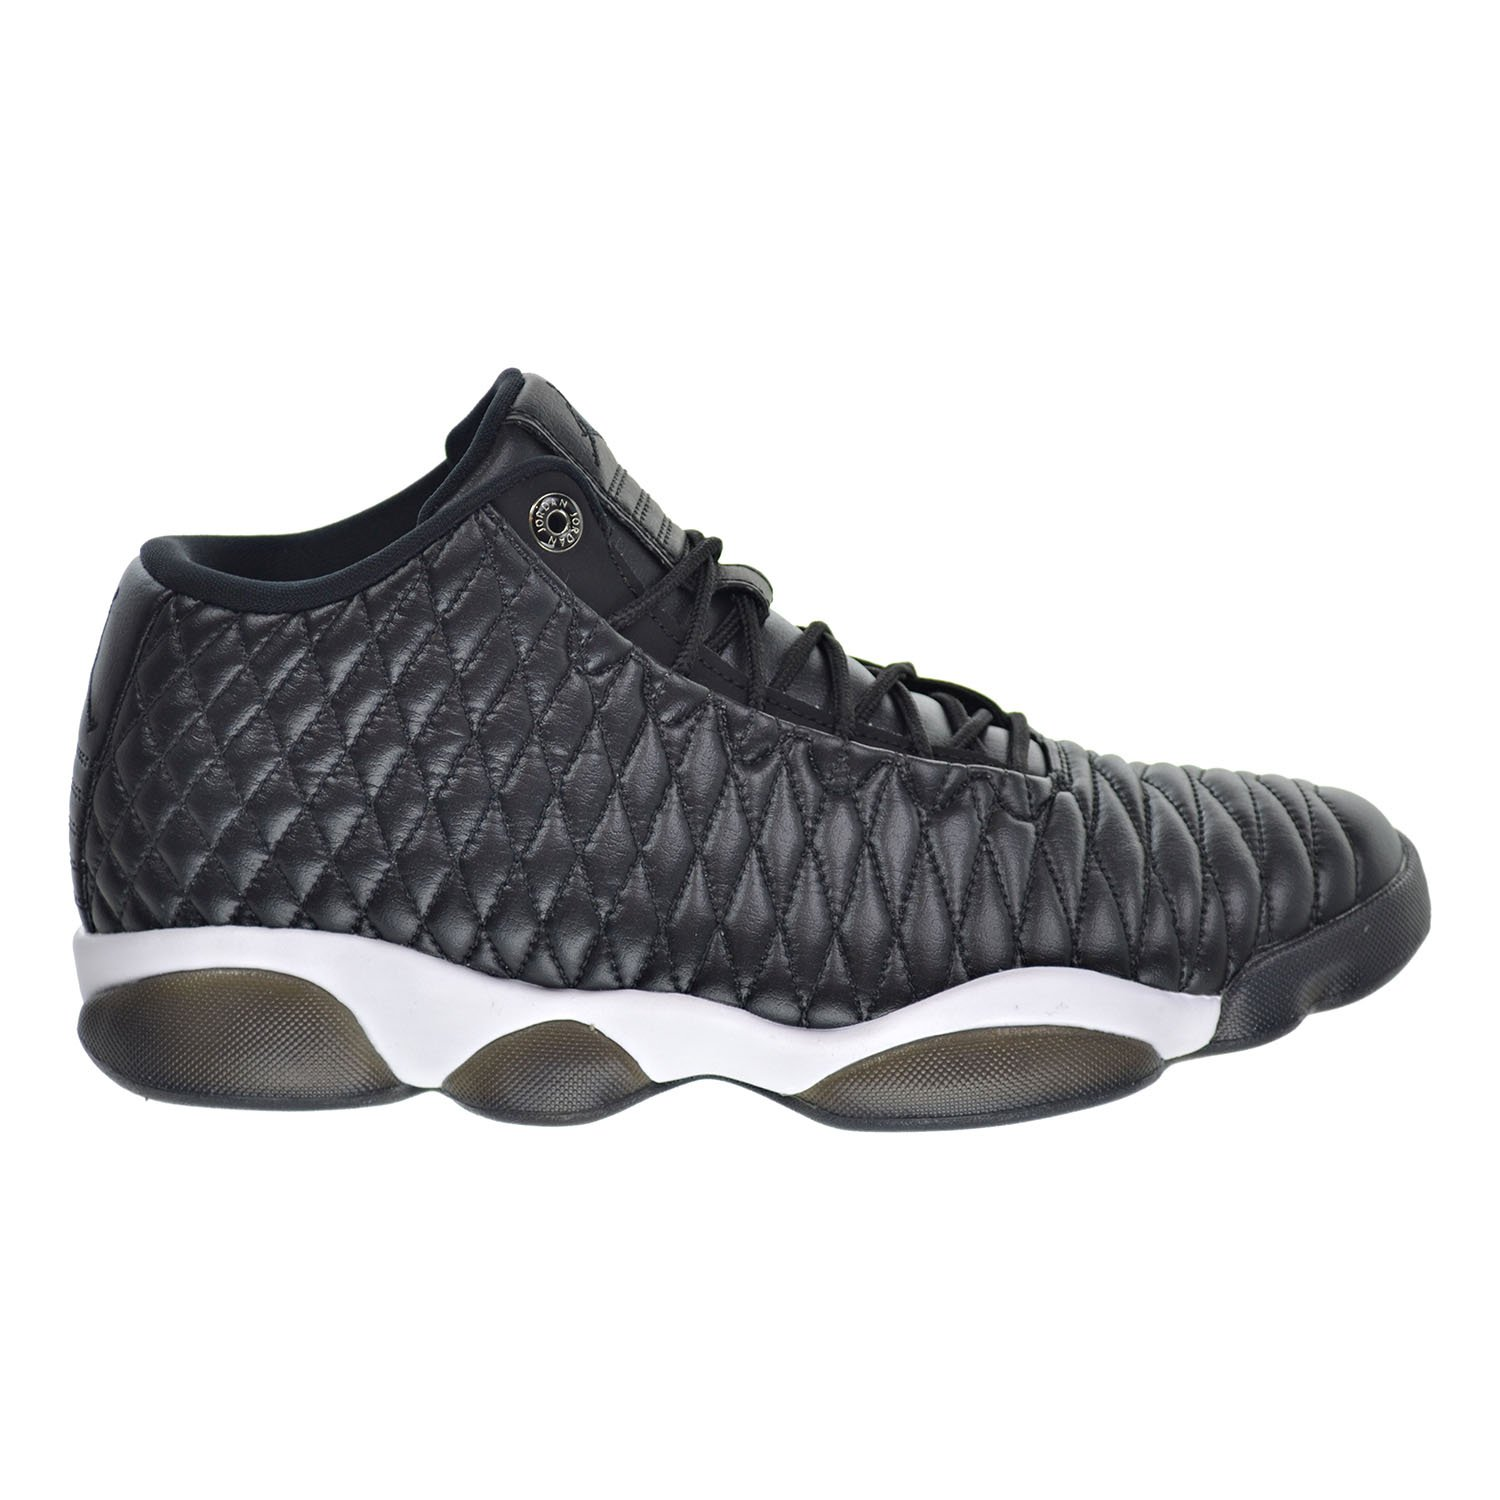 fa8d4a1624270d Jordan Horizon Low Premium Men s Shoes Black Gym Red White 850678-002 (7.5  D(M) US)  Amazon.ca  Shoes   Handbags